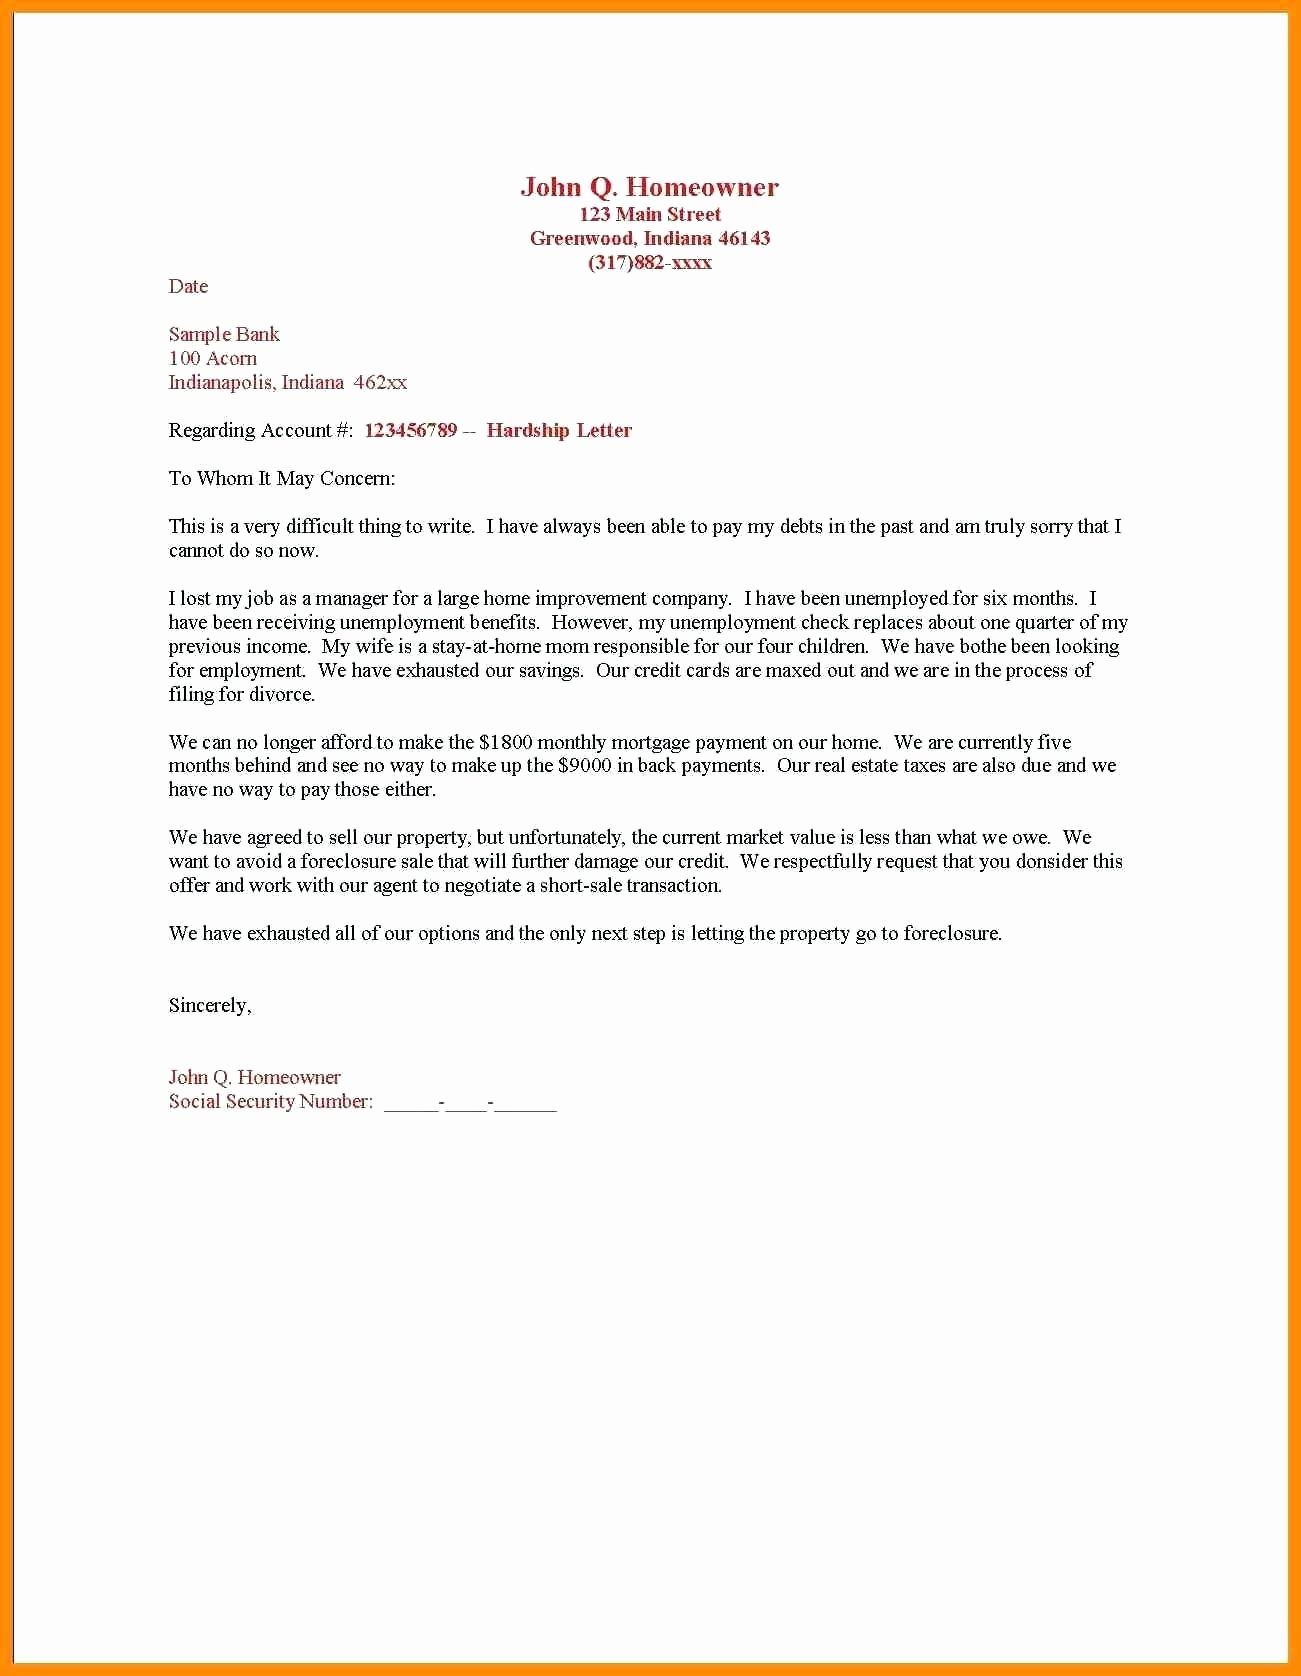 Insolvency Letter to Creditors Template Luxury Hardship Letter to Creditors Template Collection